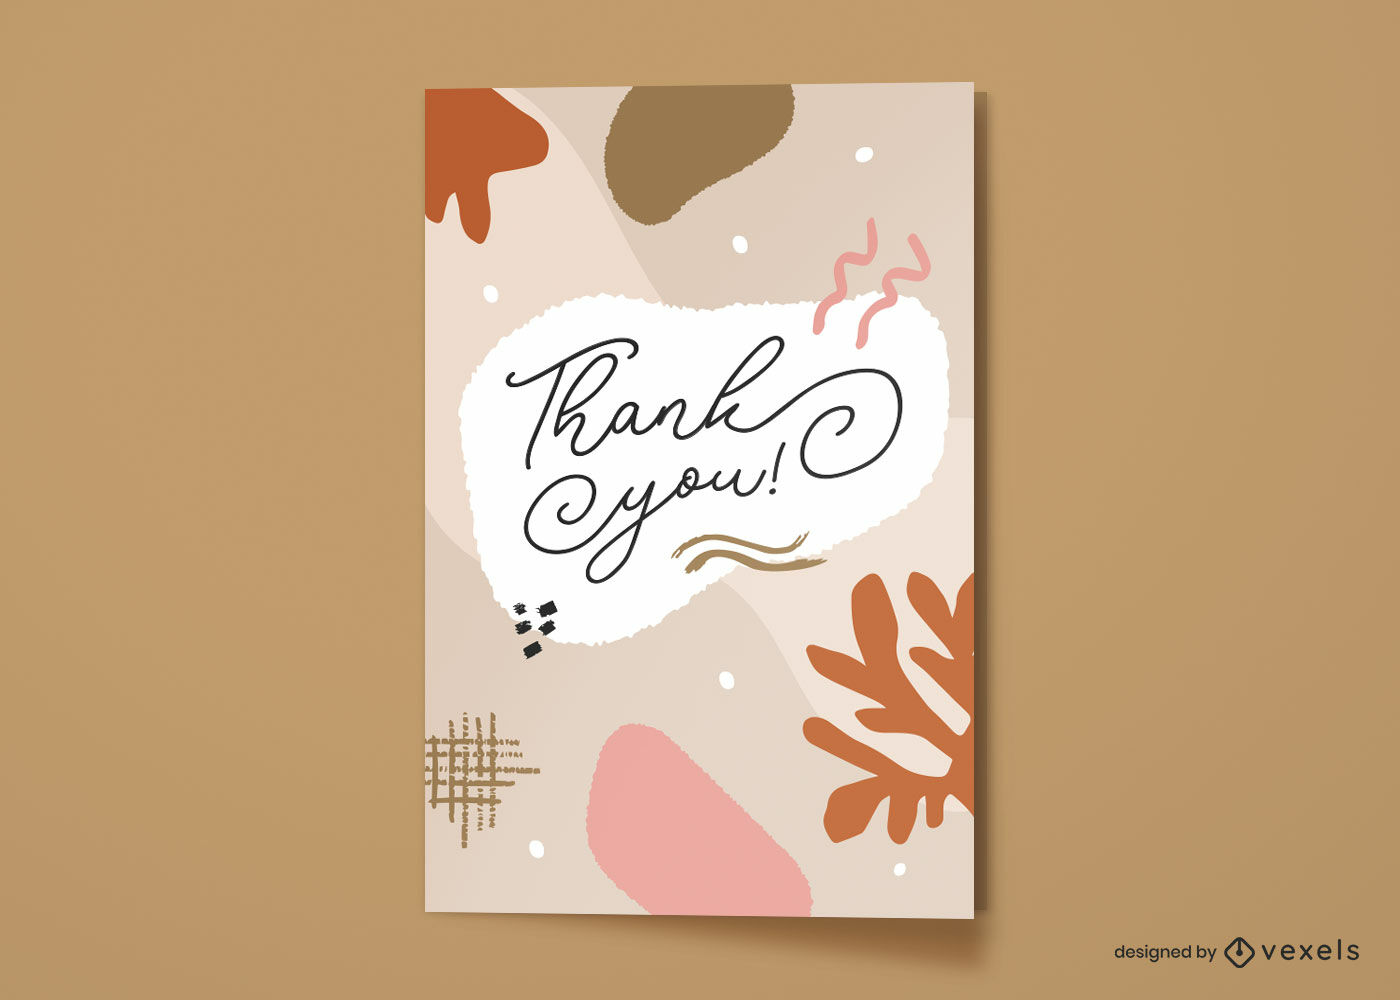 Thank you greeting card abstract design